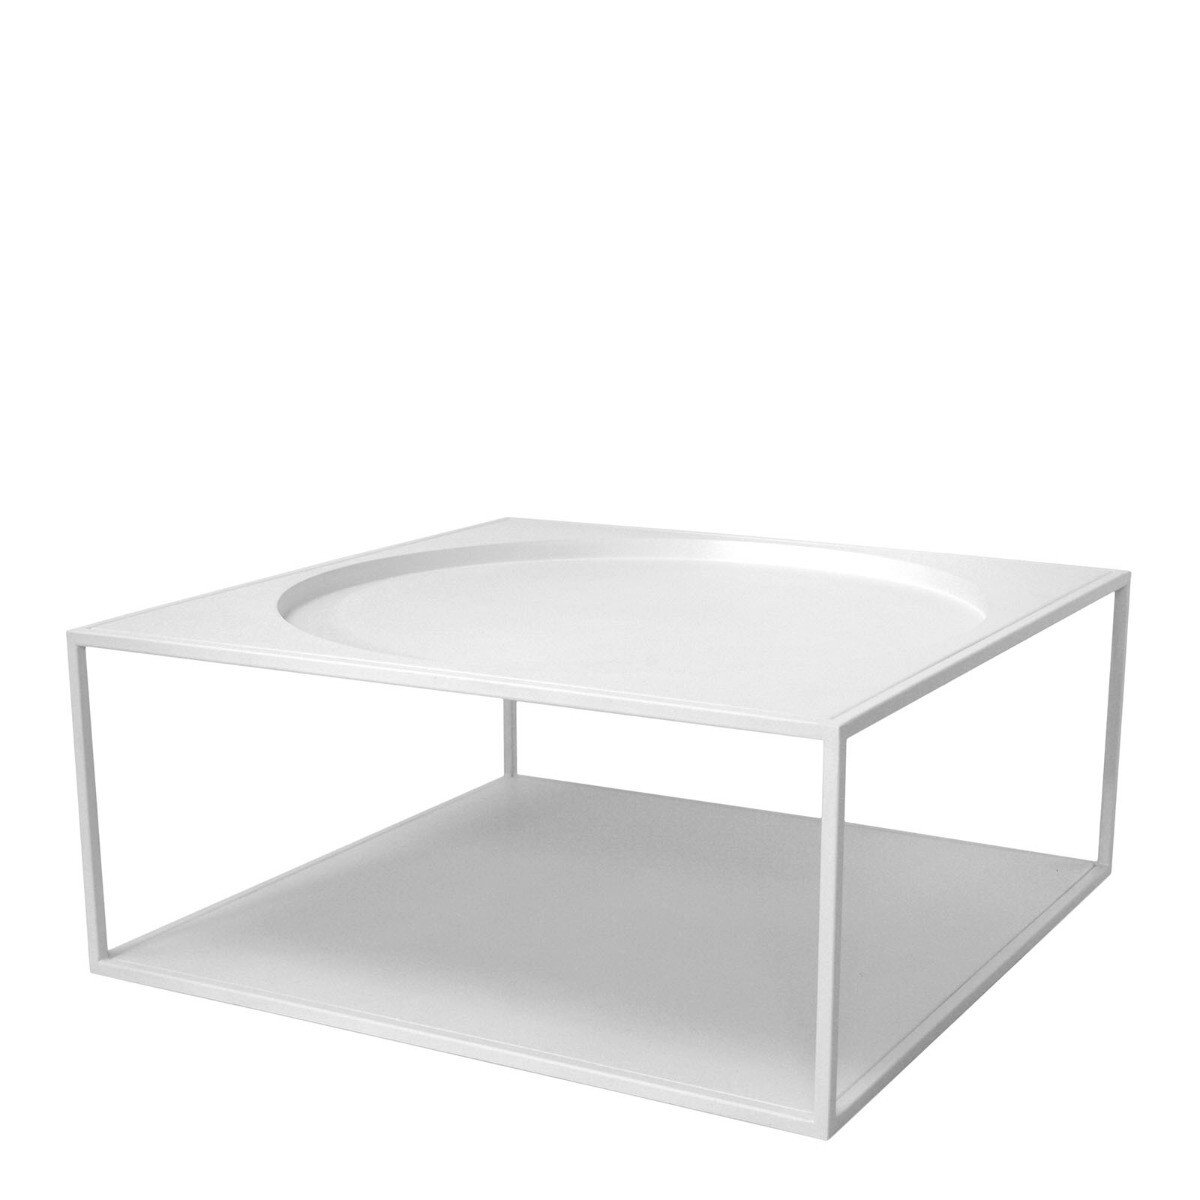 HKliving salontafel staal wit 30x69x69cm